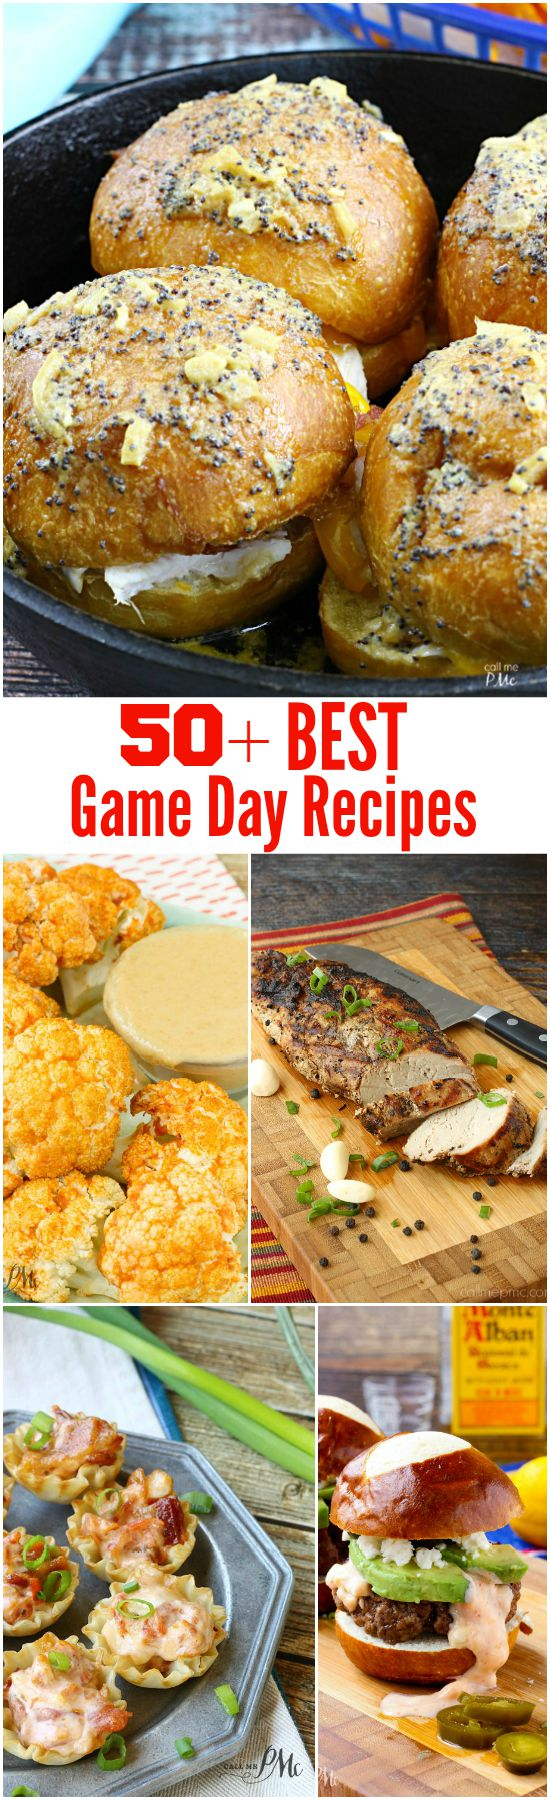 50+ Best Game Day Recipes